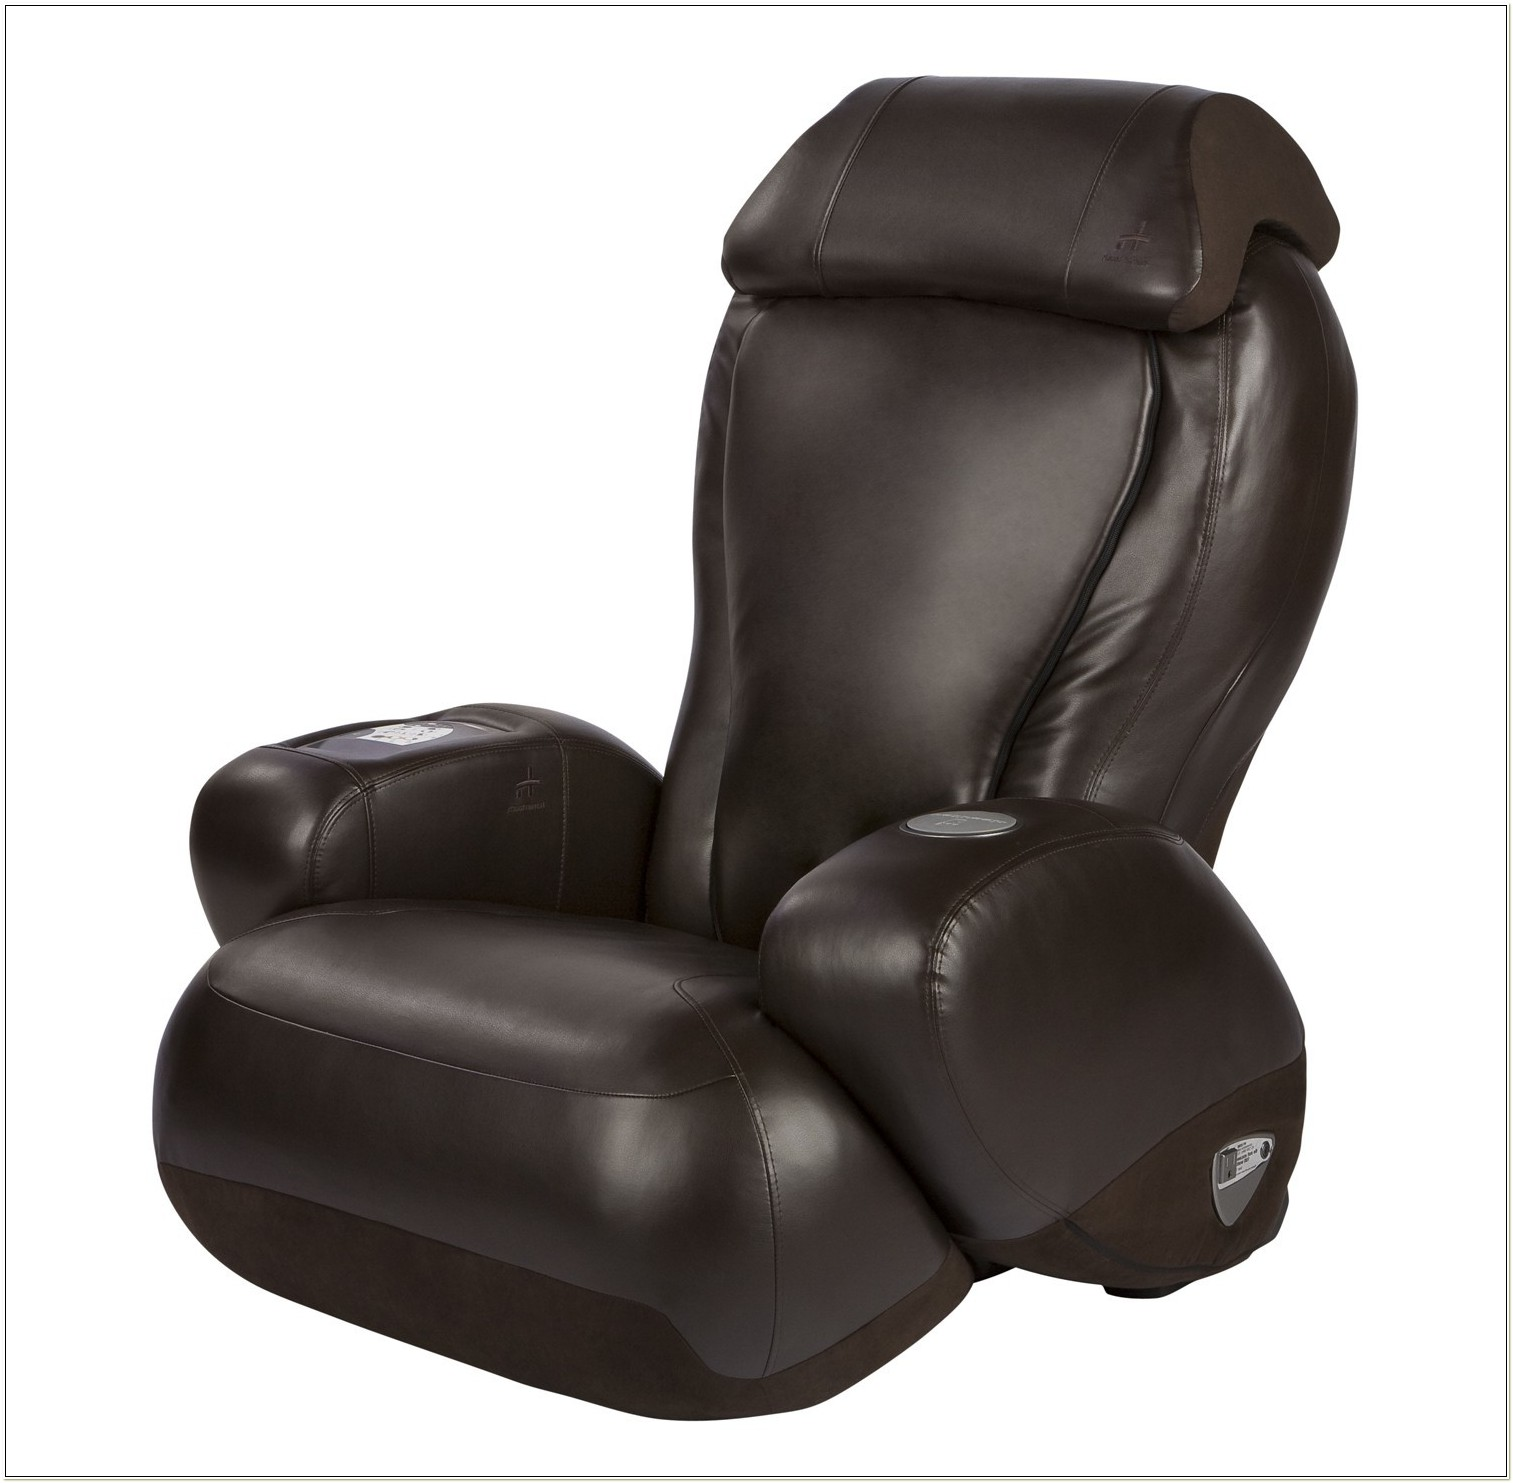 Ijoy Turbo 2 Robotic Massage Chair